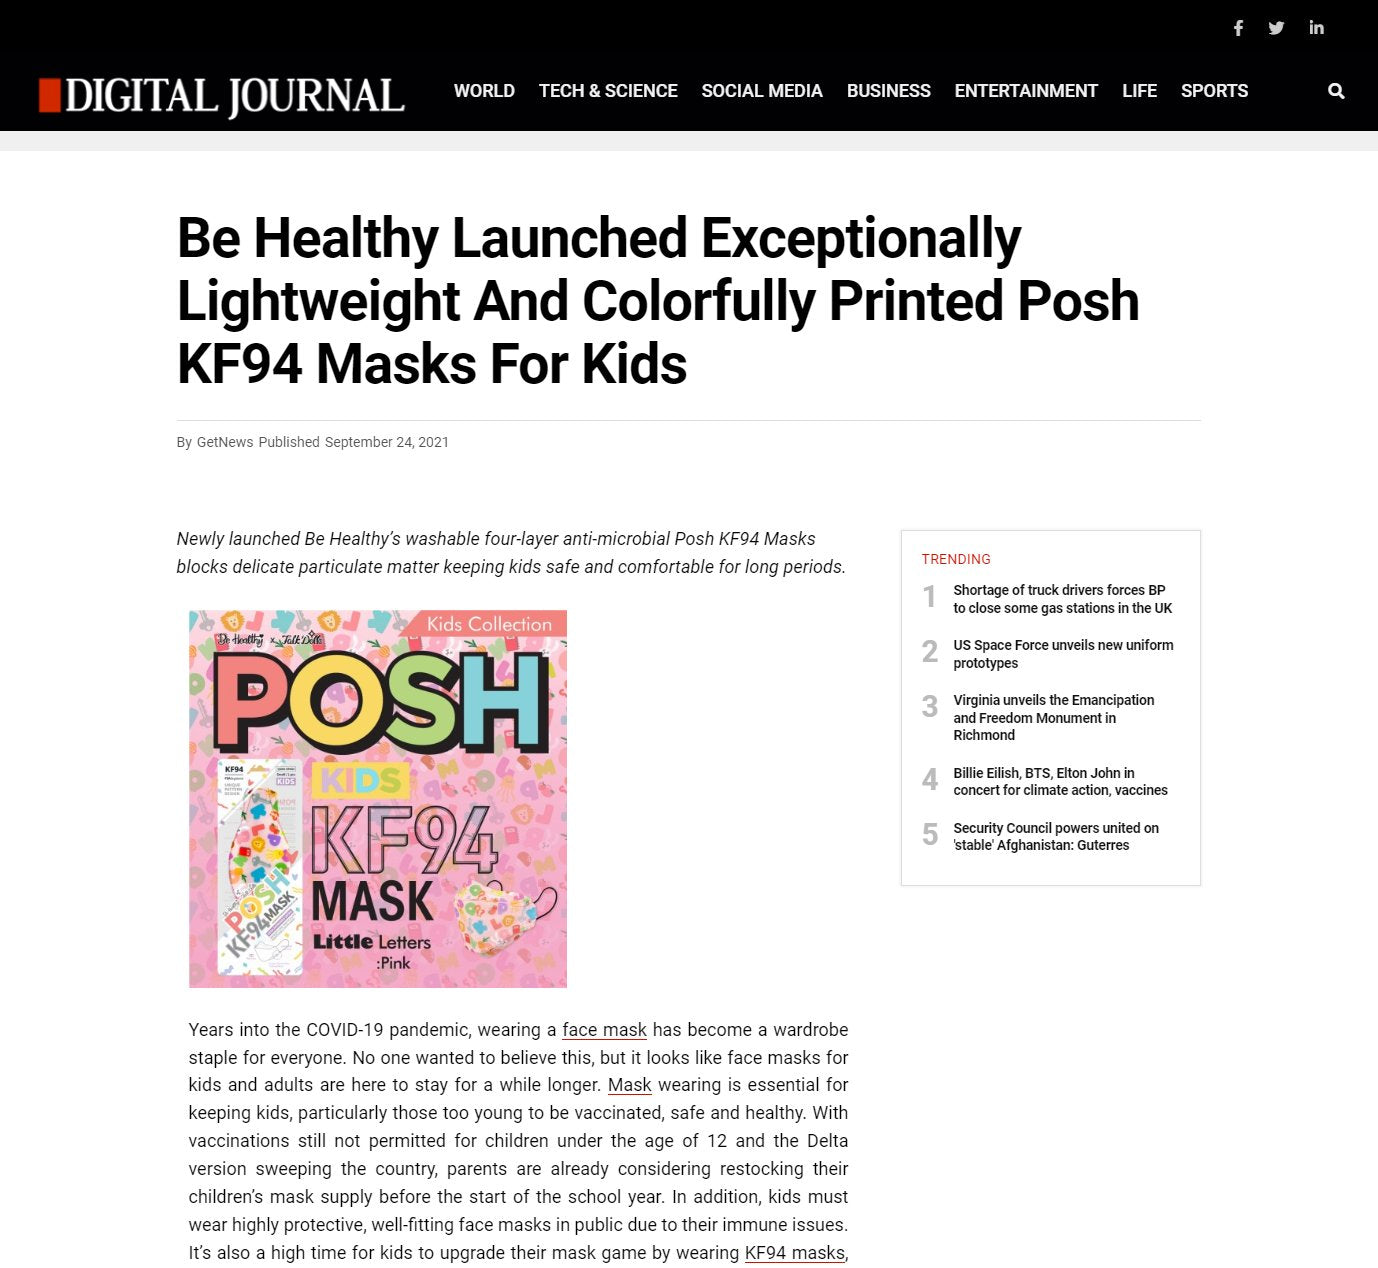 Be Healthy Launched Exceptionally Lightweight And Colorfully Printed Posh KF94 Masks For Kids